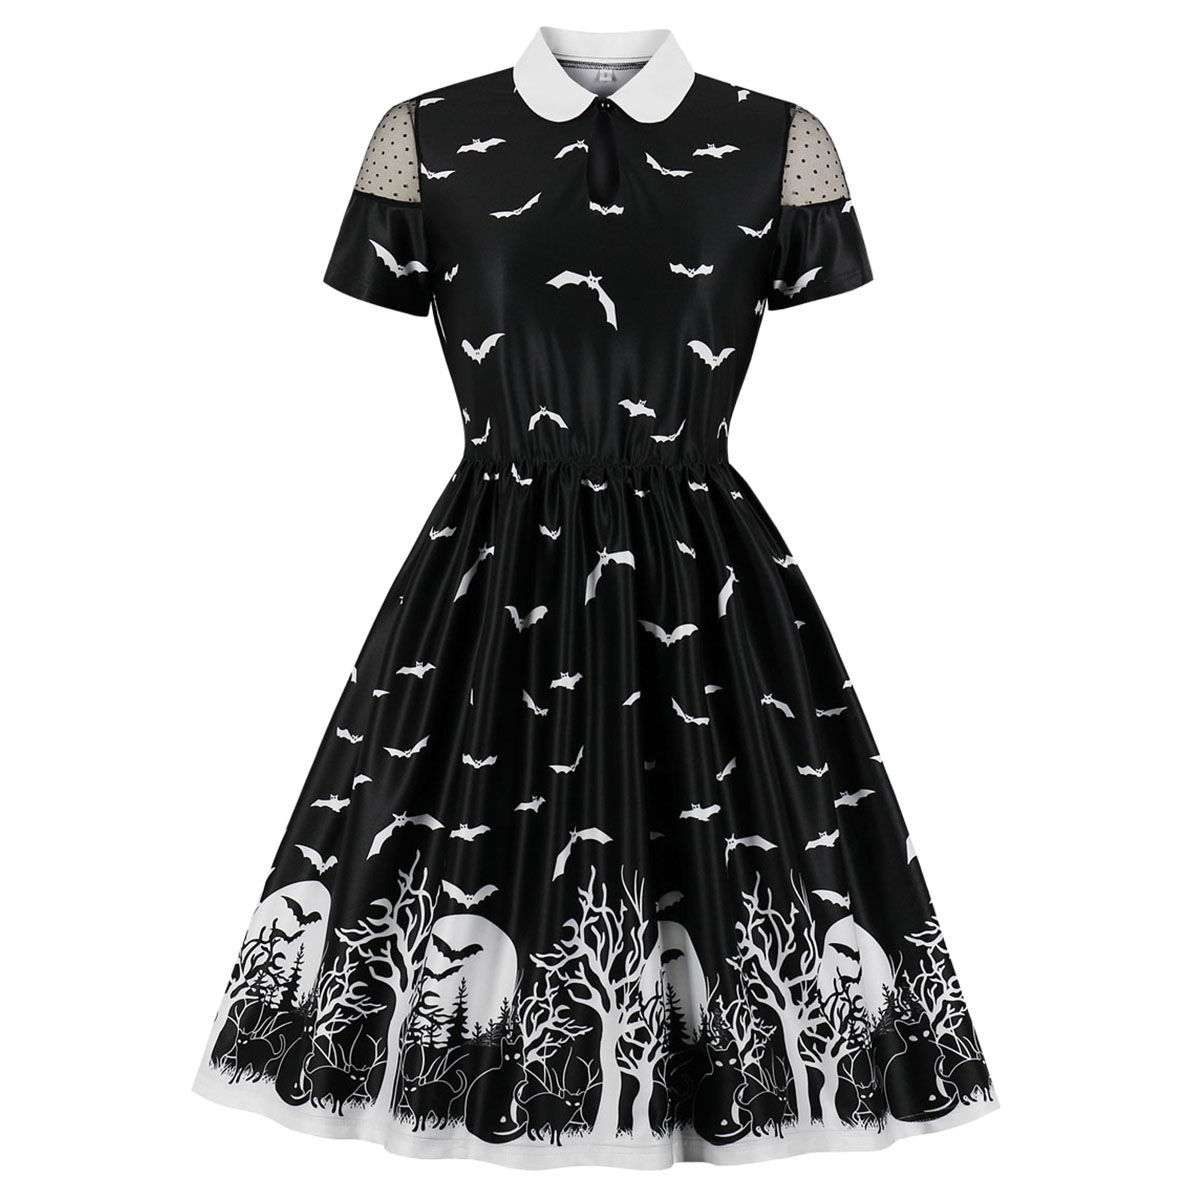 Halloween Dress for Women Fashion Printed High Waist Party Pleated Midi Casual Short Sleeve